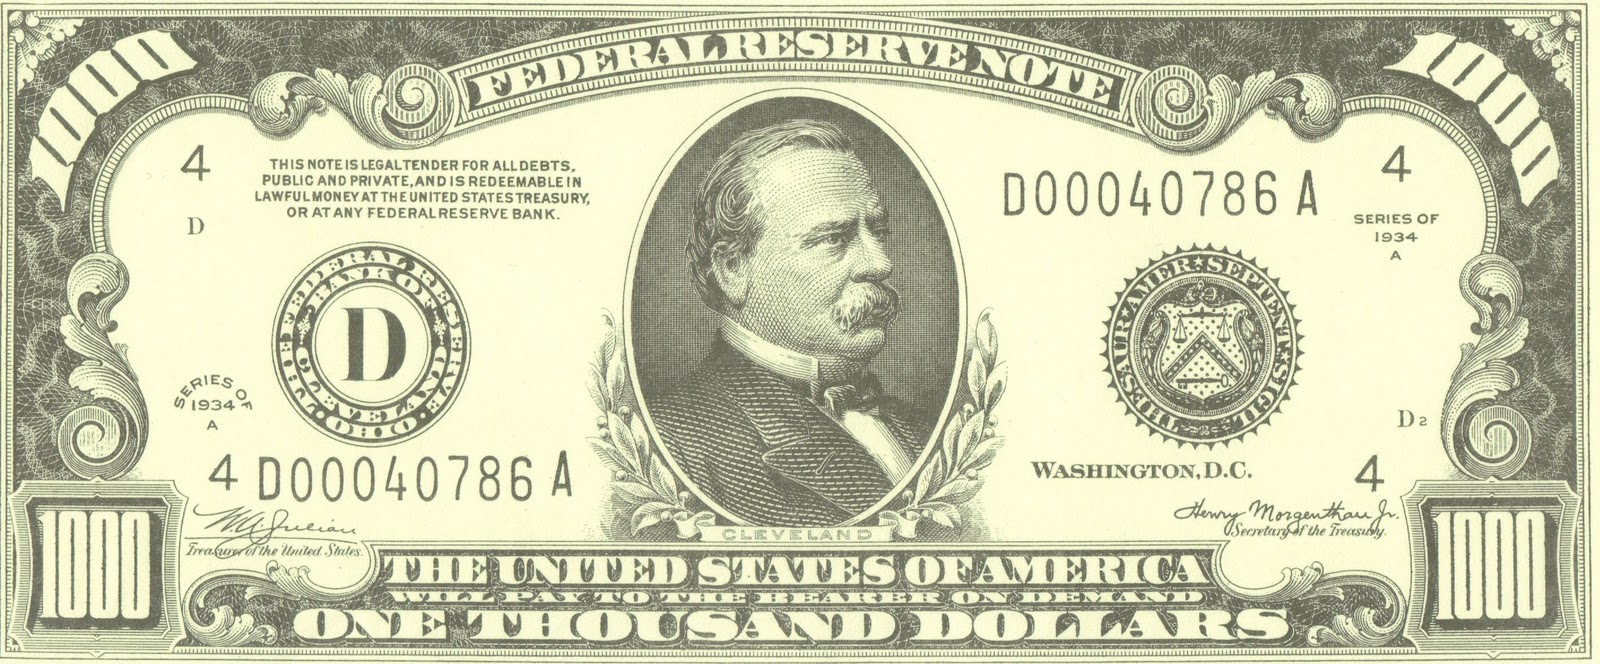 1000-frn-redeemable-in-lawful-money